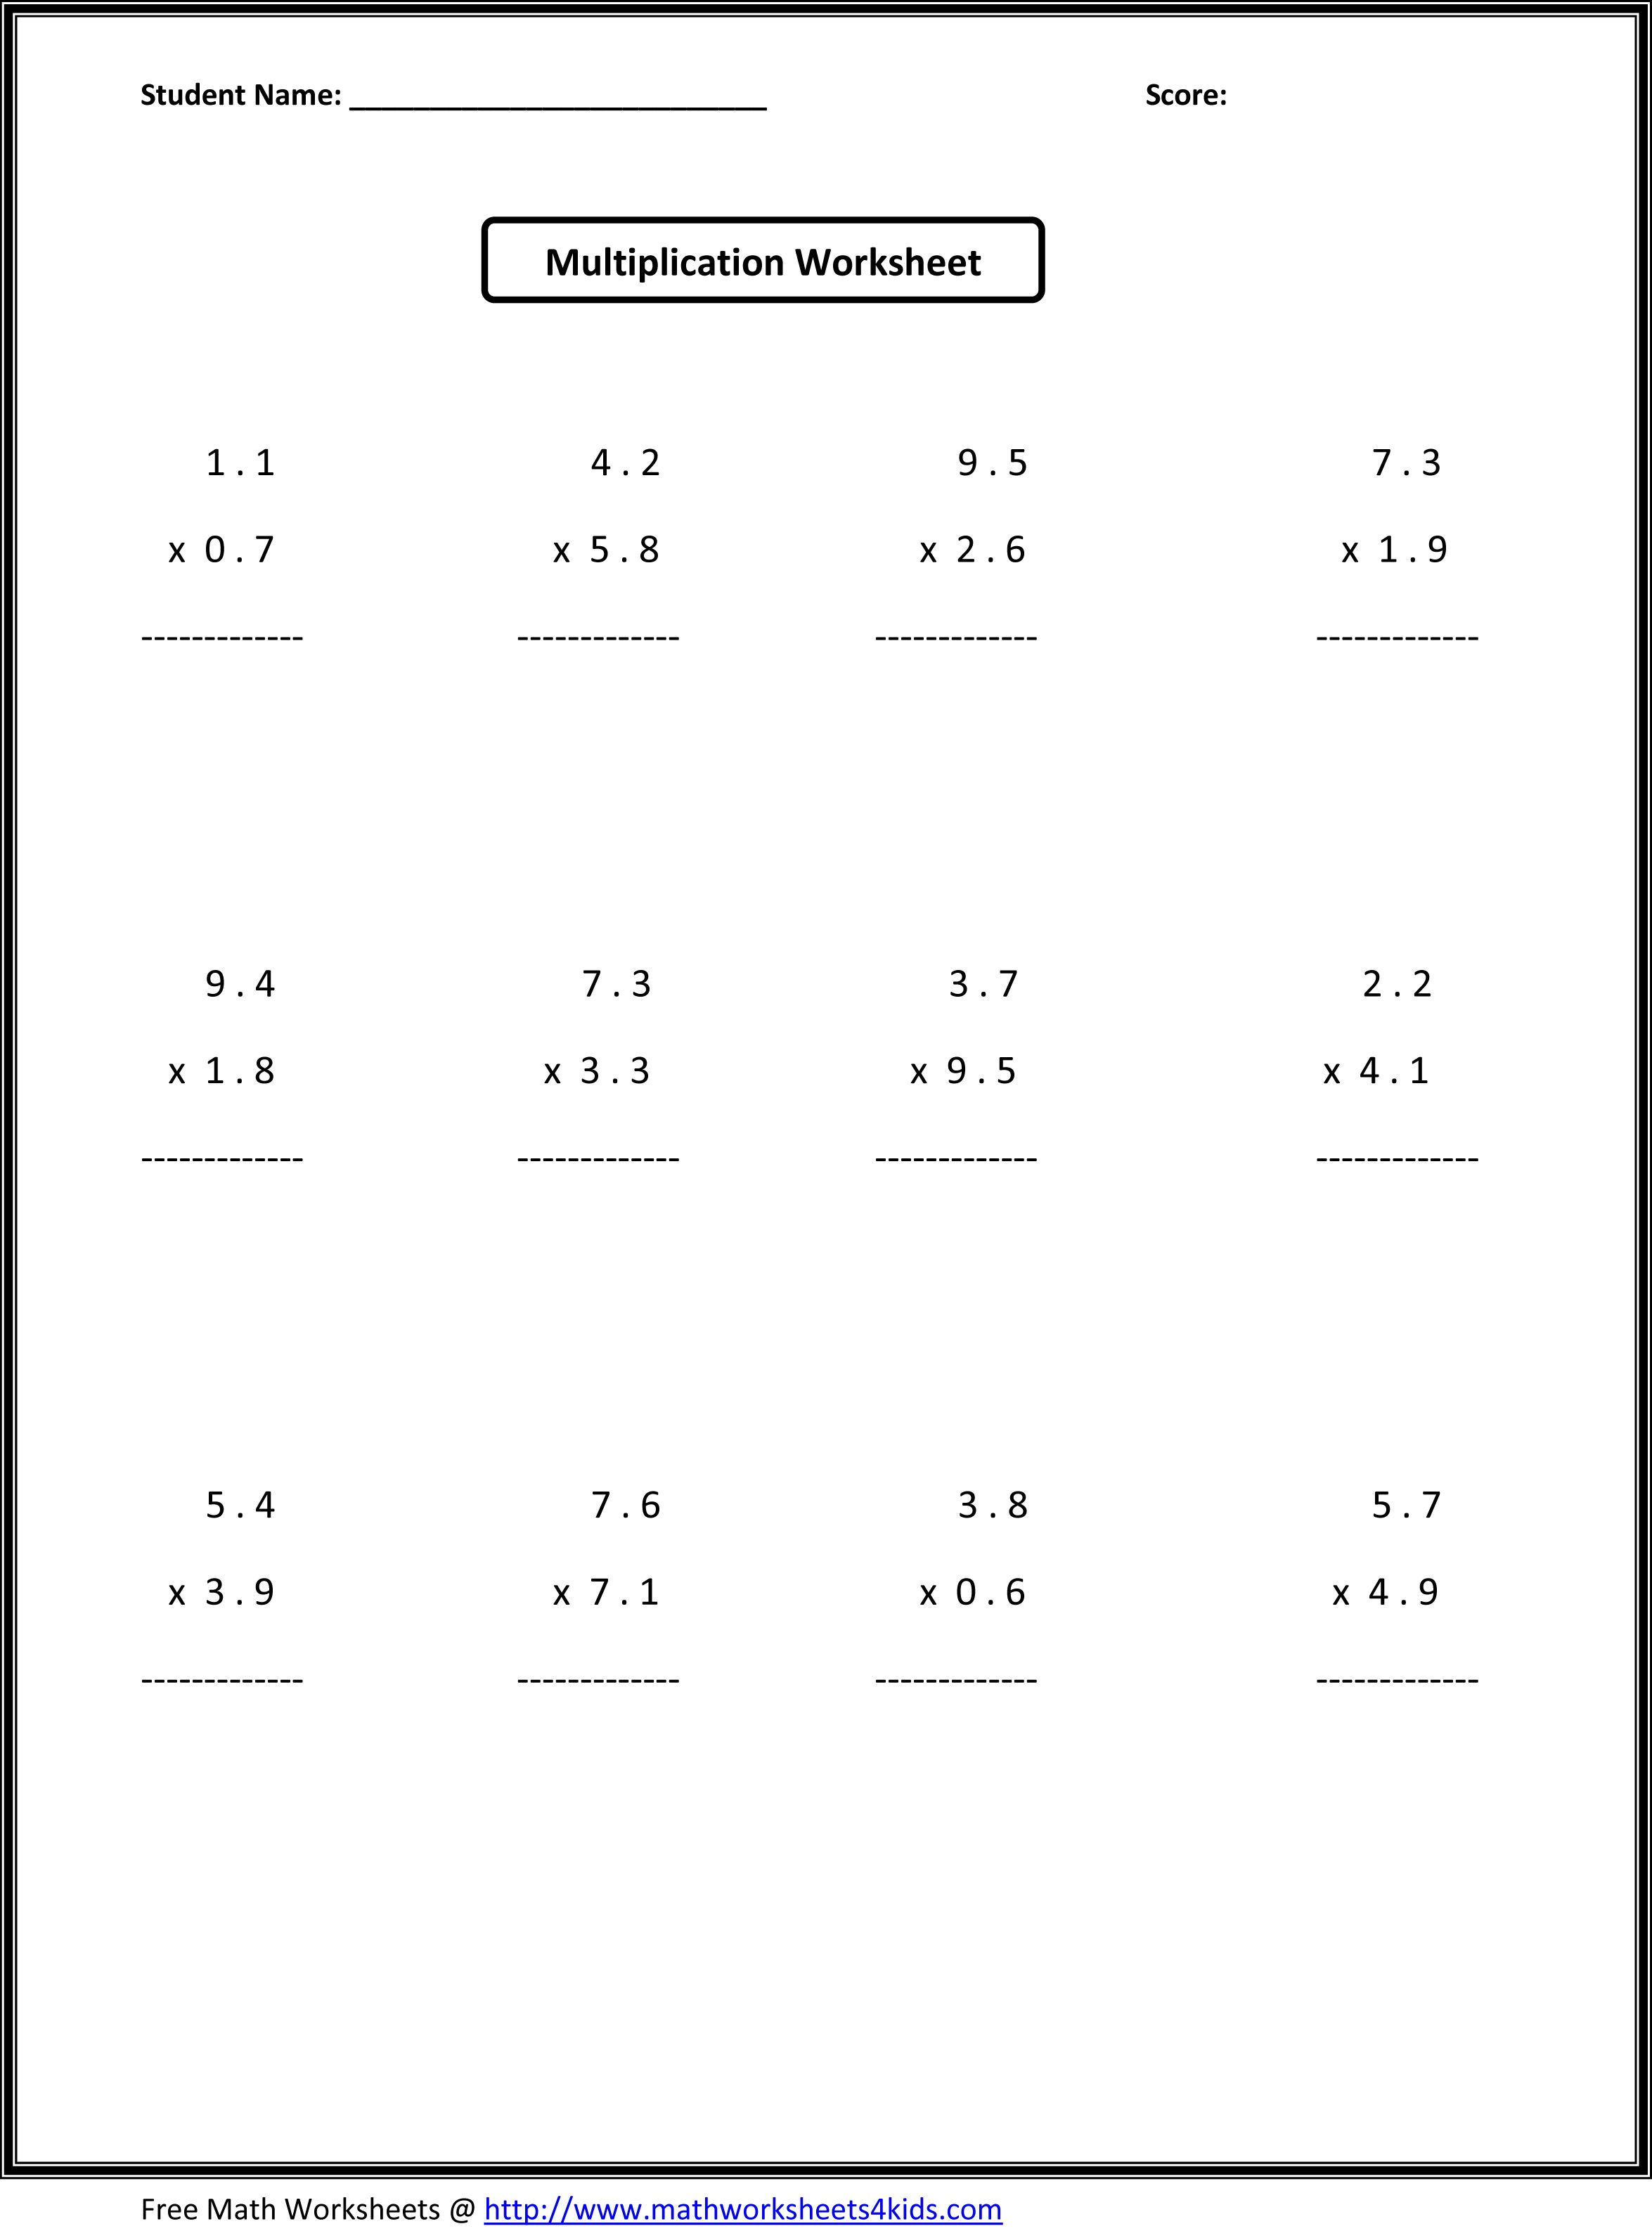 Worksheets Free Math Worksheets 6th Grade 7th grade math worksheets value absolute sixth have ratio multiplying and dividing fractions